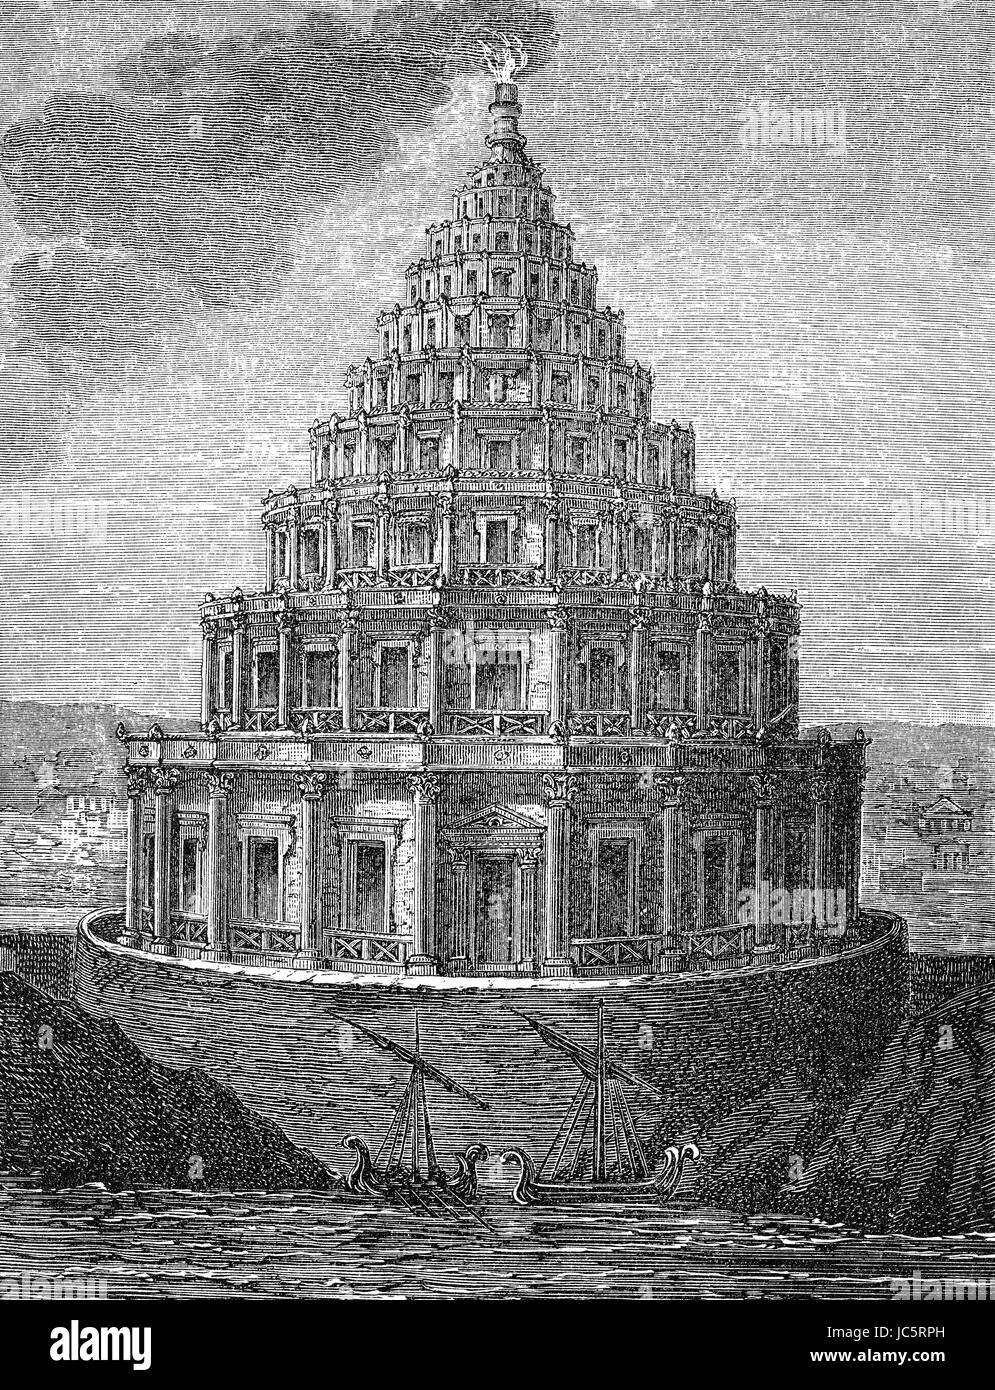 The Lighthouse of Alexandria, or the Pharos of Alexandria - Stock Image